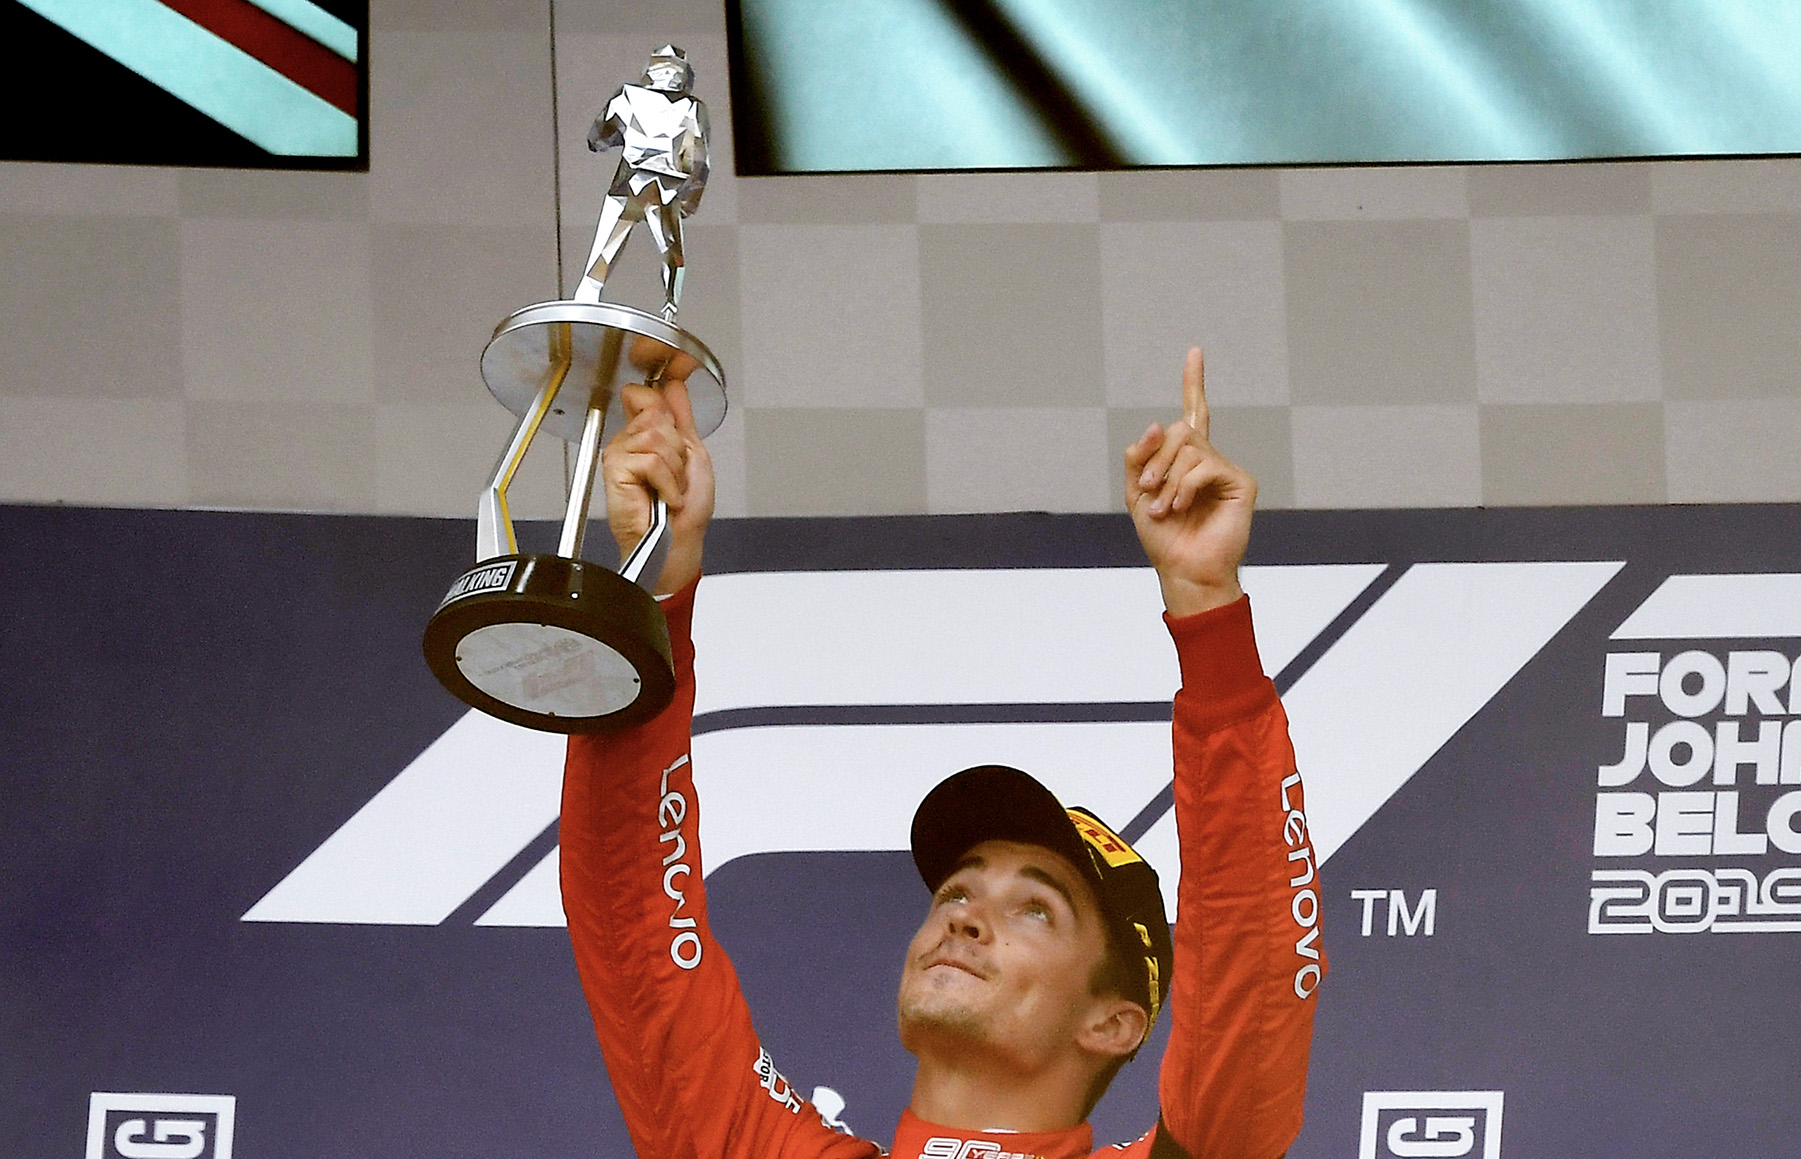 Charles Leclerc pays tribute to Anthoine Hubert after winning the 2019 Belgian grand Prix at Spa Francorchamps